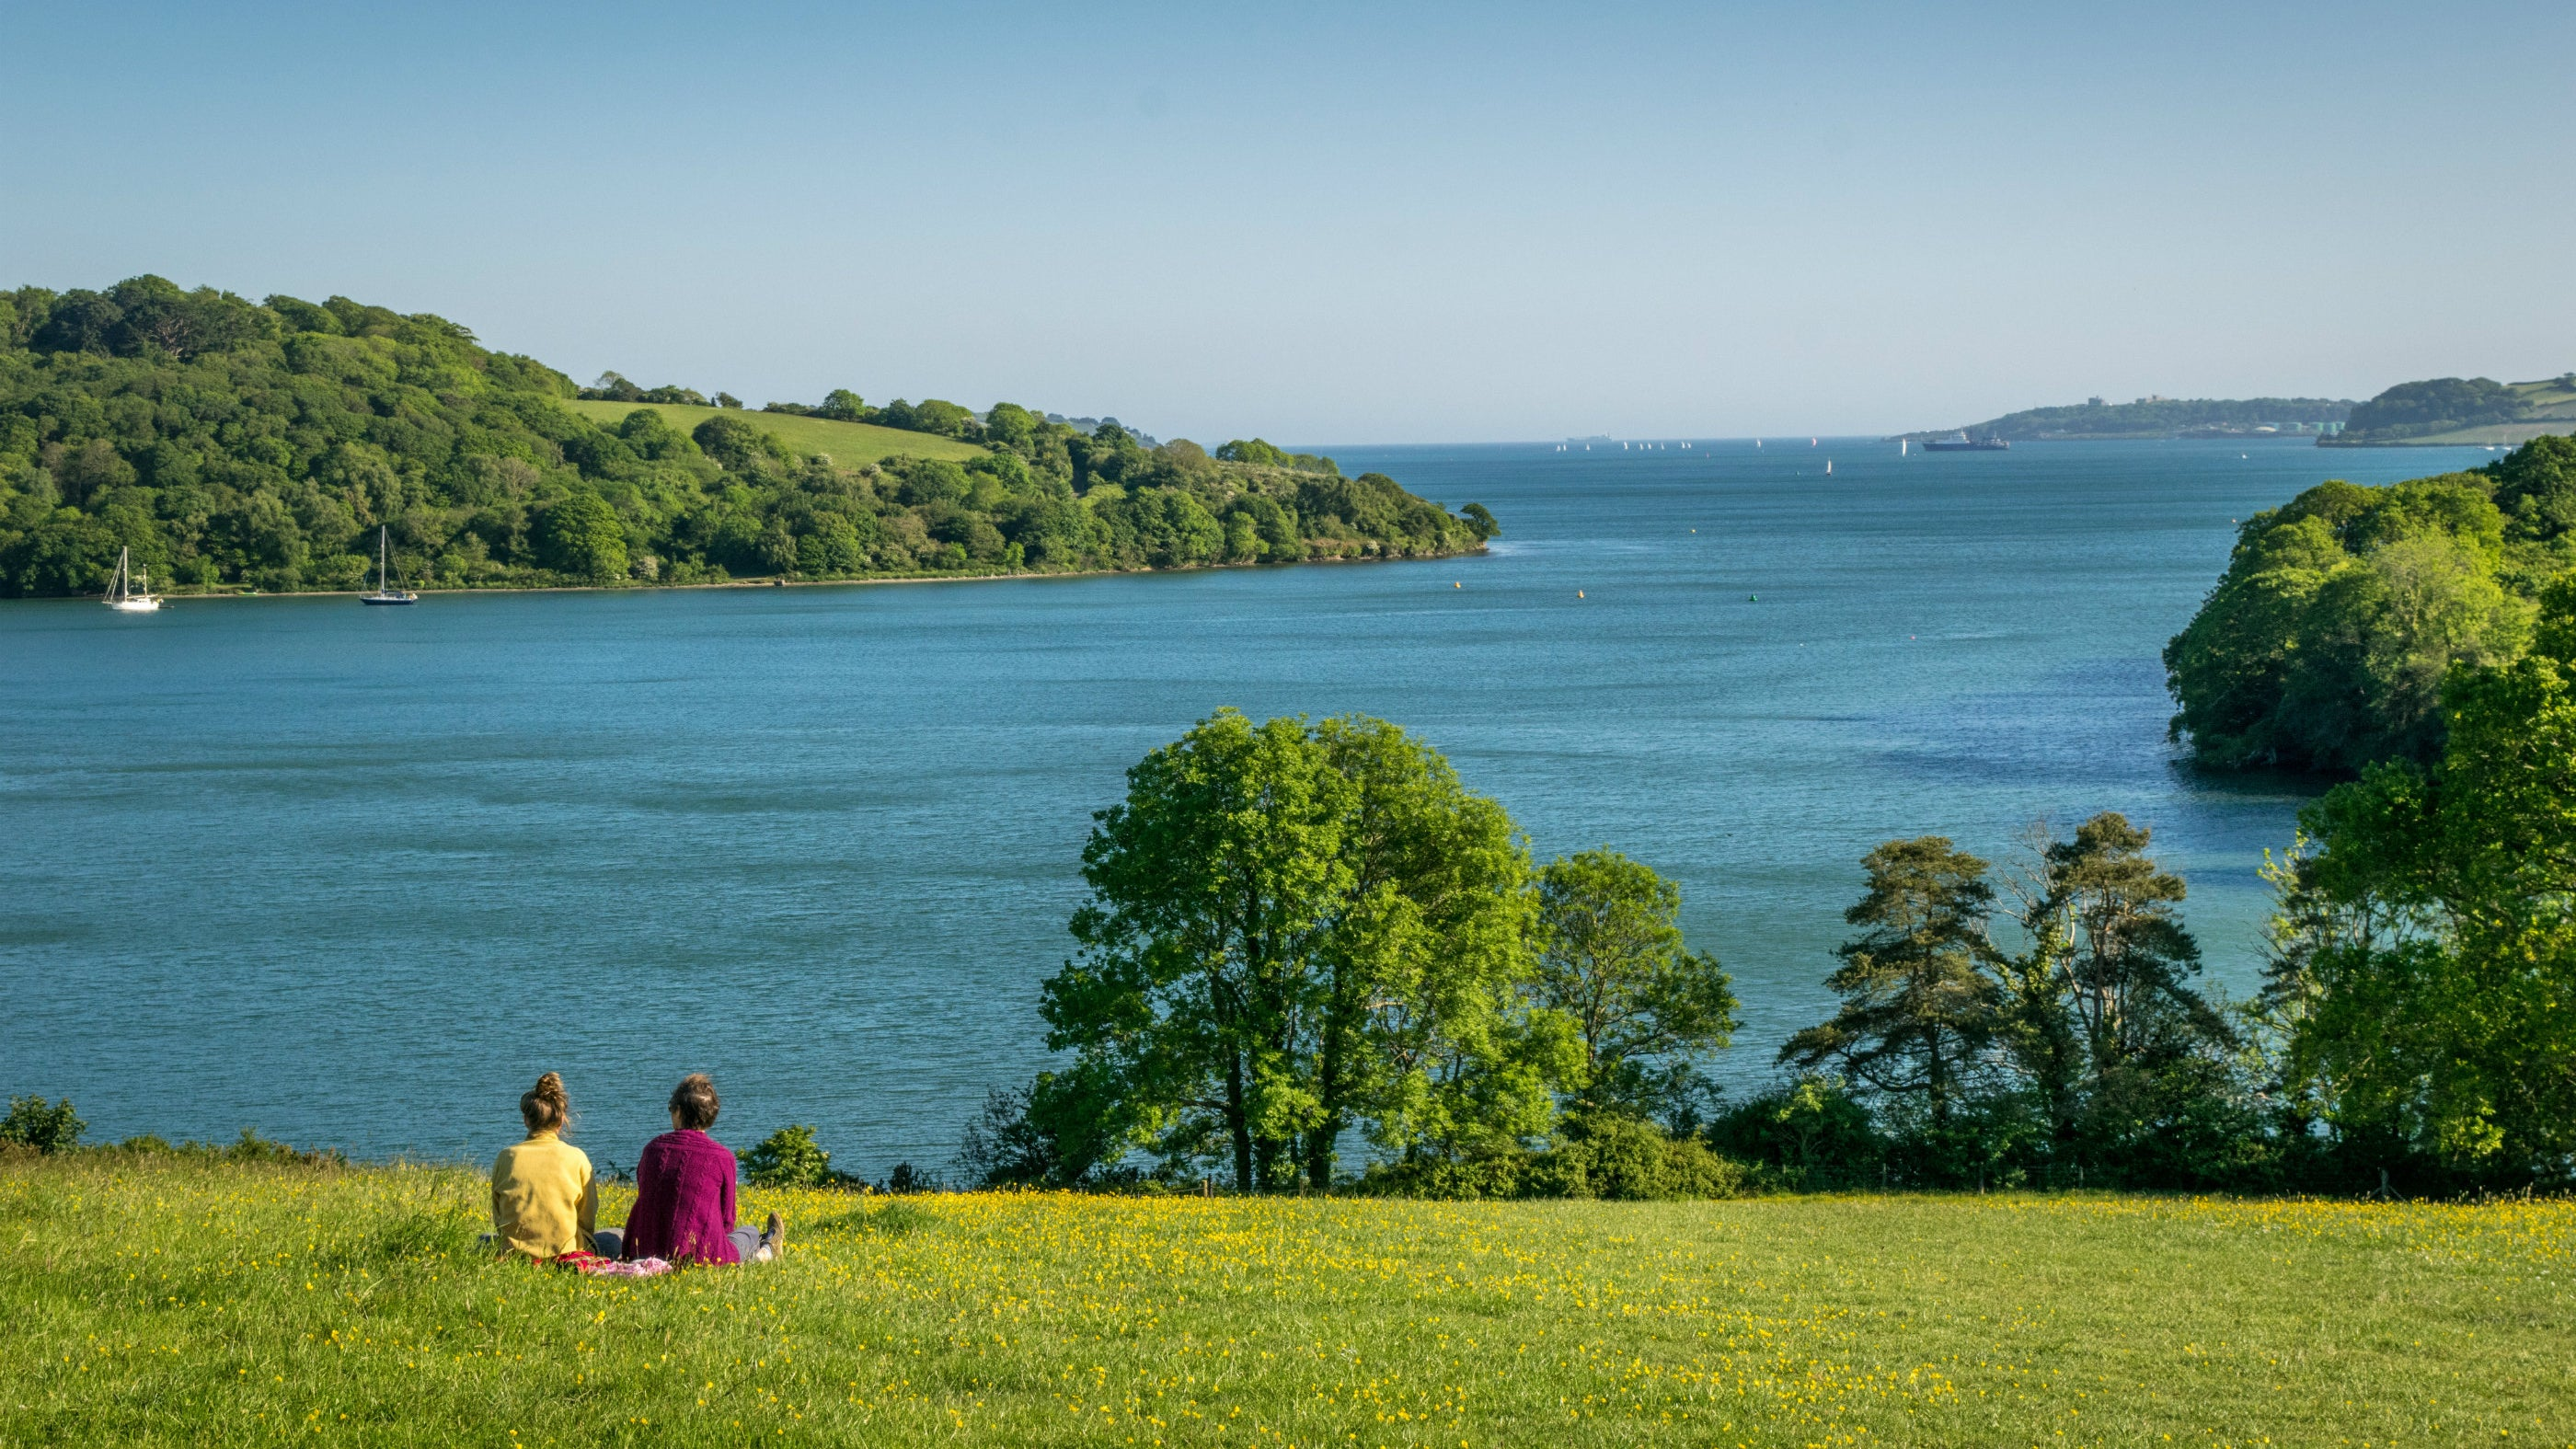 Two people enjoy the view from the parkland at Trelissick, Cornwal